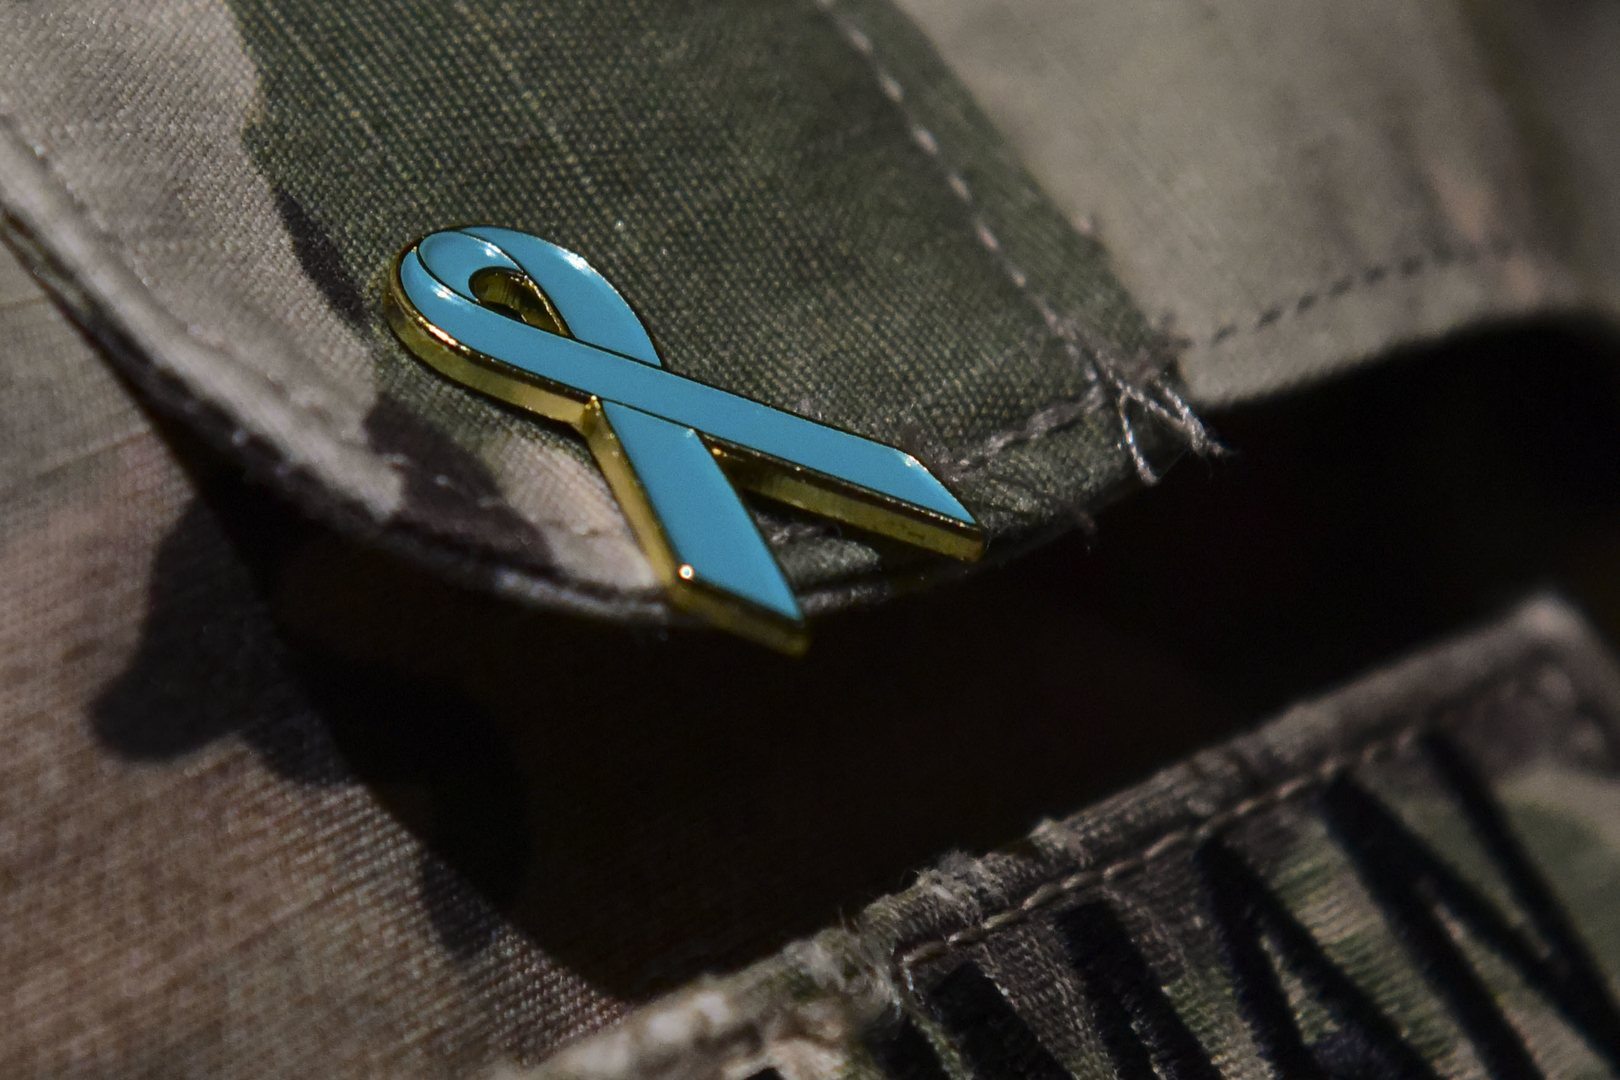 A Sexual Harassment/Assault Response and Prevention Program pin is worn by a U.S. Army Soldier at Joint Base Langley-Eustis, Virginia, April 25, 2018. The SHARP team members aimed to provide a more lighthearted environment for Soldiers to engage in a discussion about sexual assault prevention. (U.S. Air Force photo by Airman 1st Class Monica Roybal)